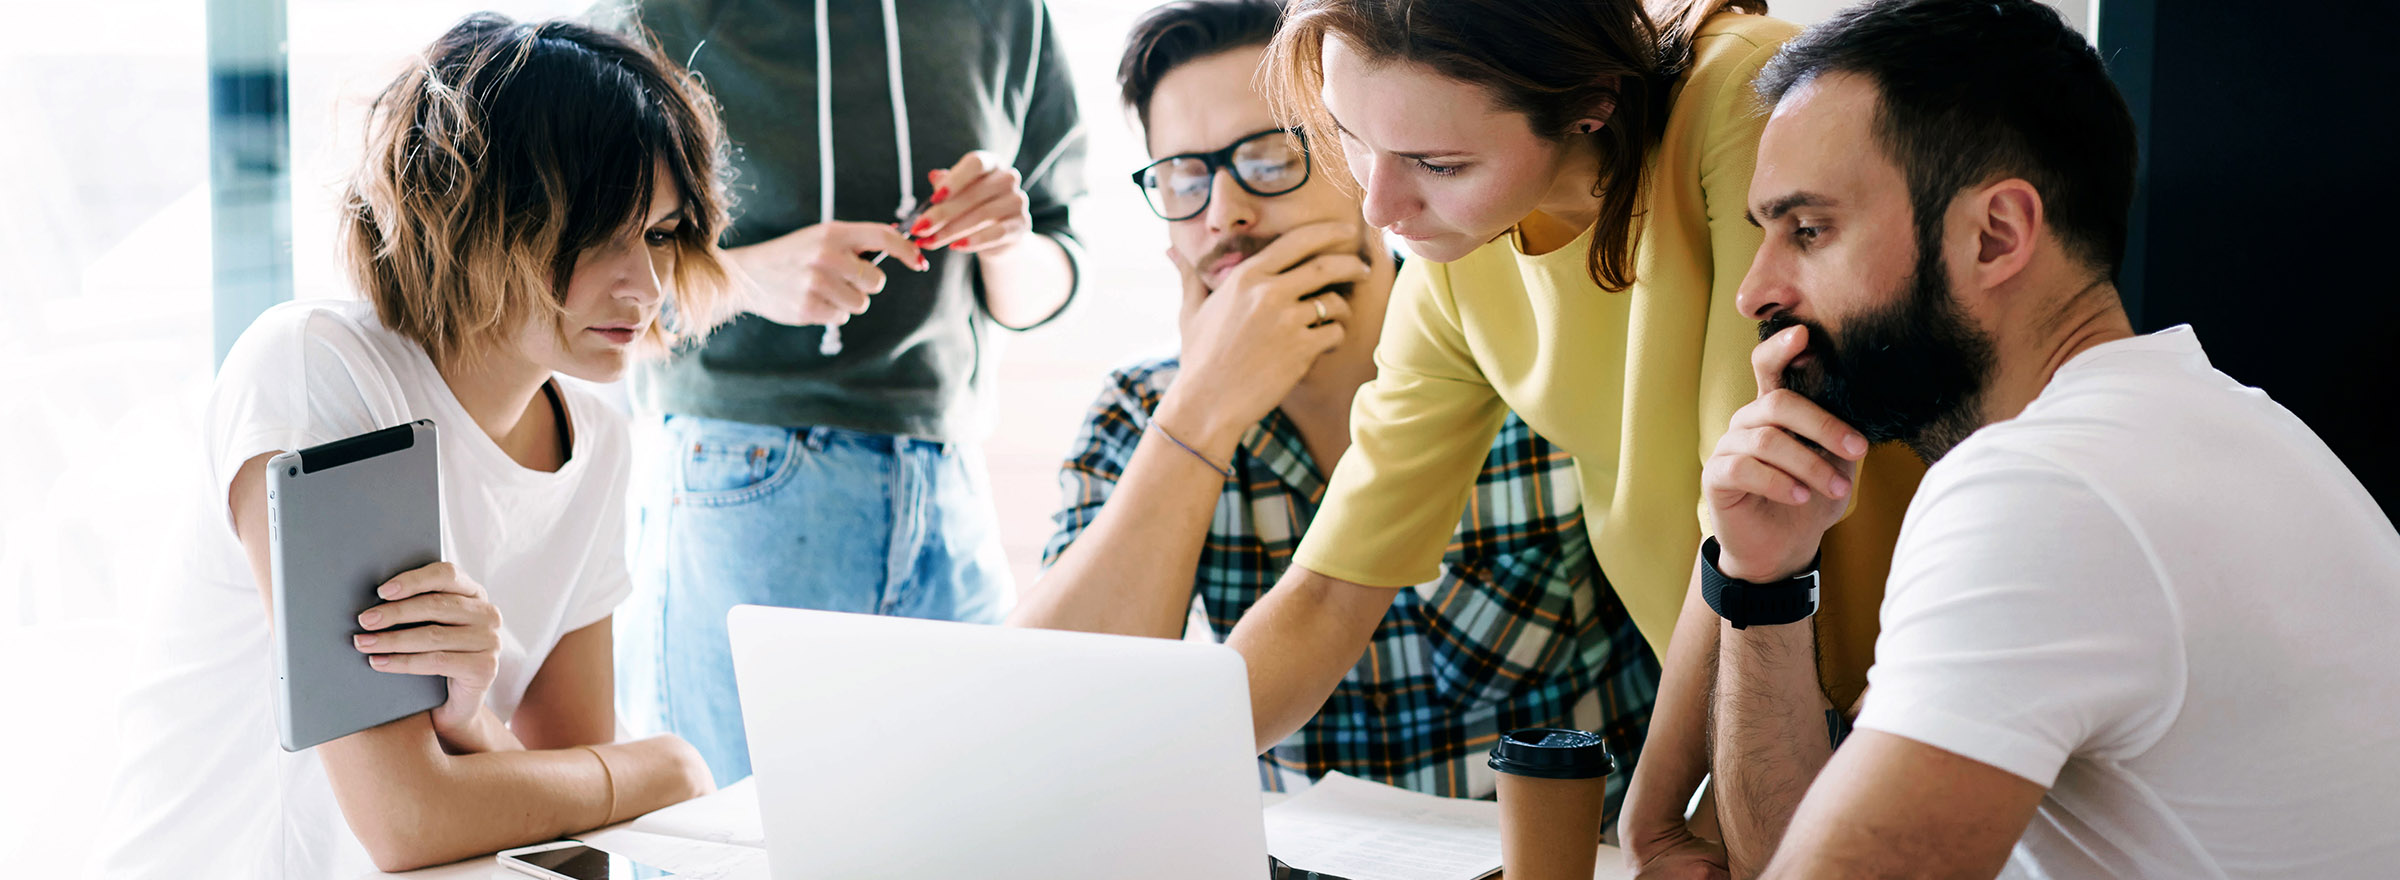 group of people brainstorming around a laptop